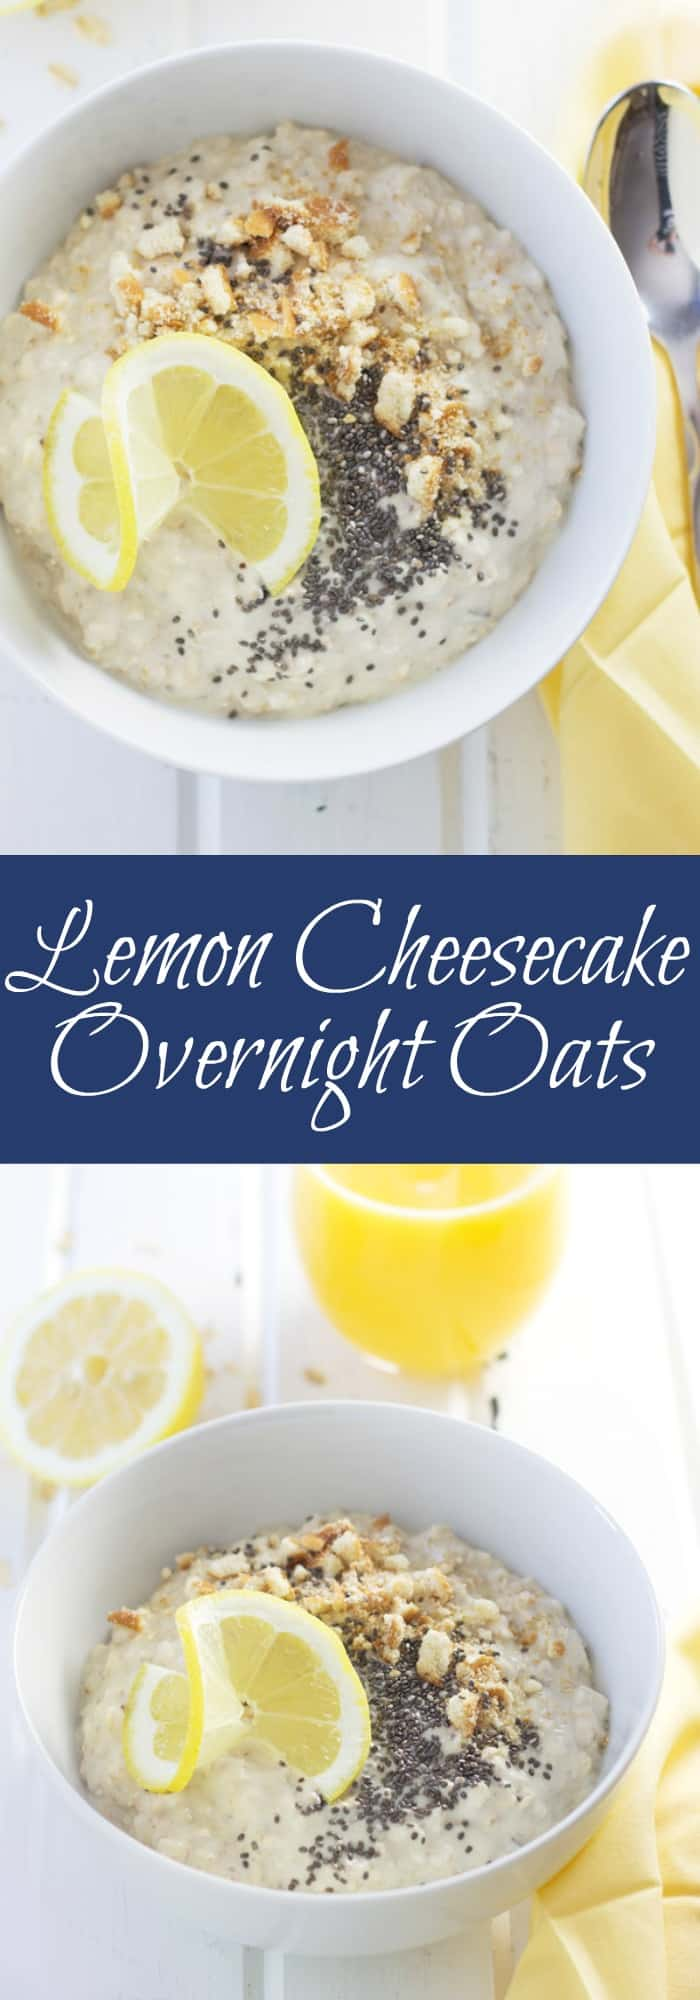 Lemon Cheesecake Overnight Oats are a great way to start off your morning! Quick, easy and satisfying! | www.countrysidecravings.com